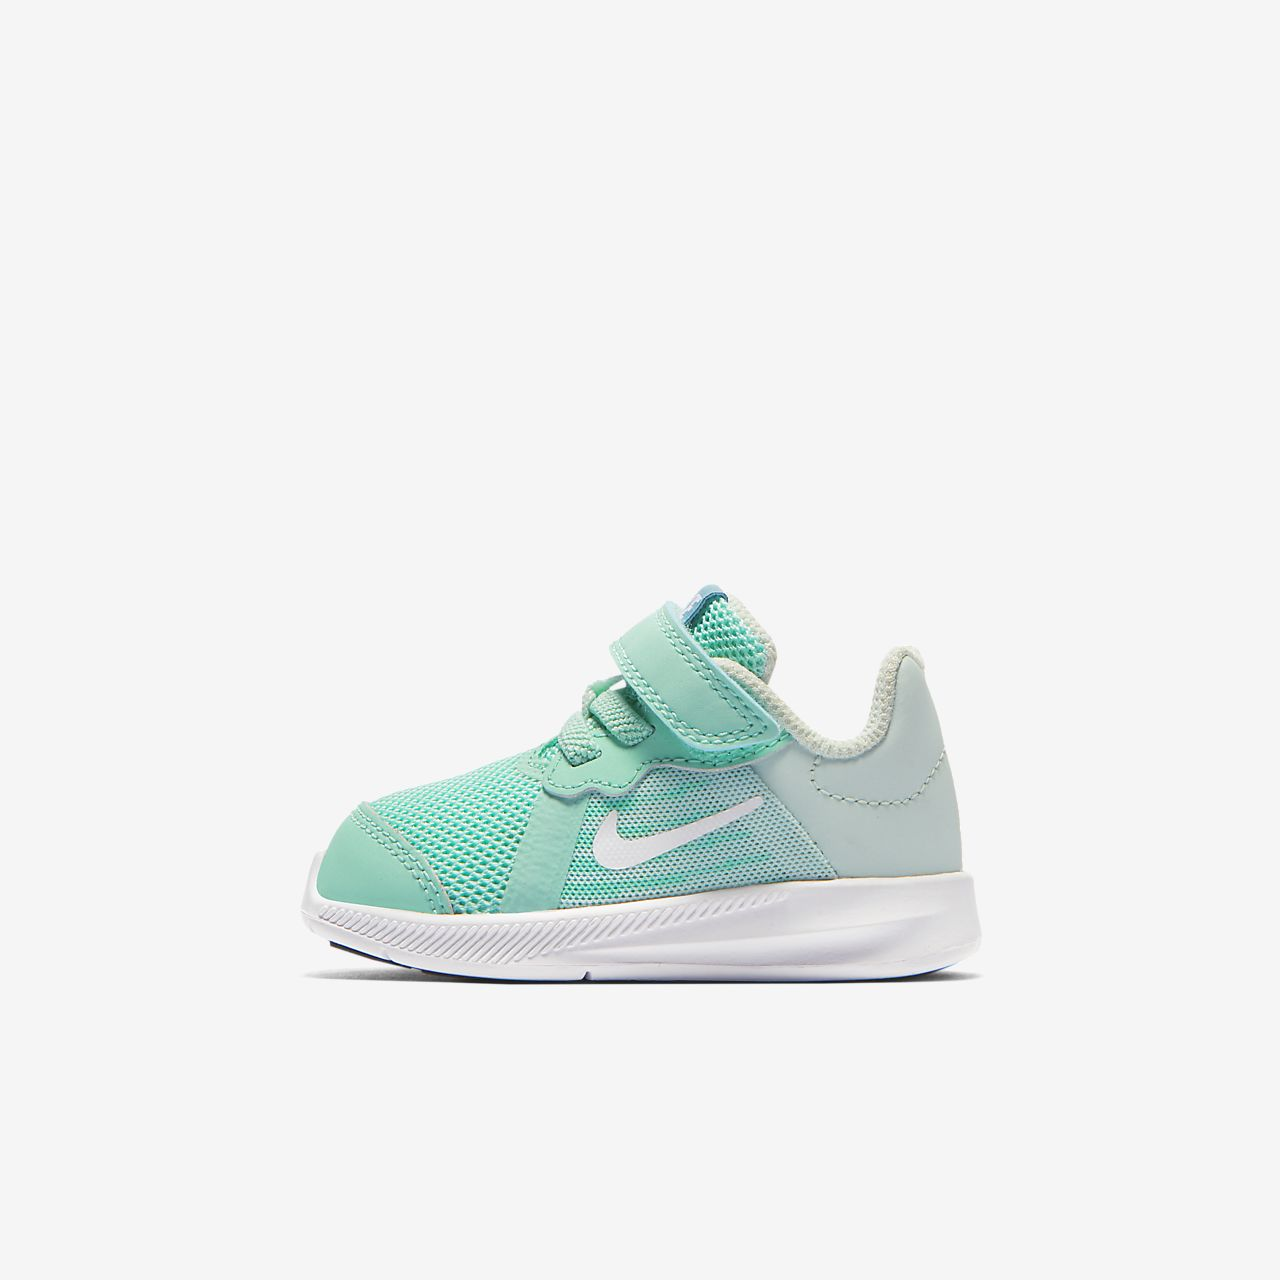 Nike Downshifter 8 Baby and Toddler Shoe